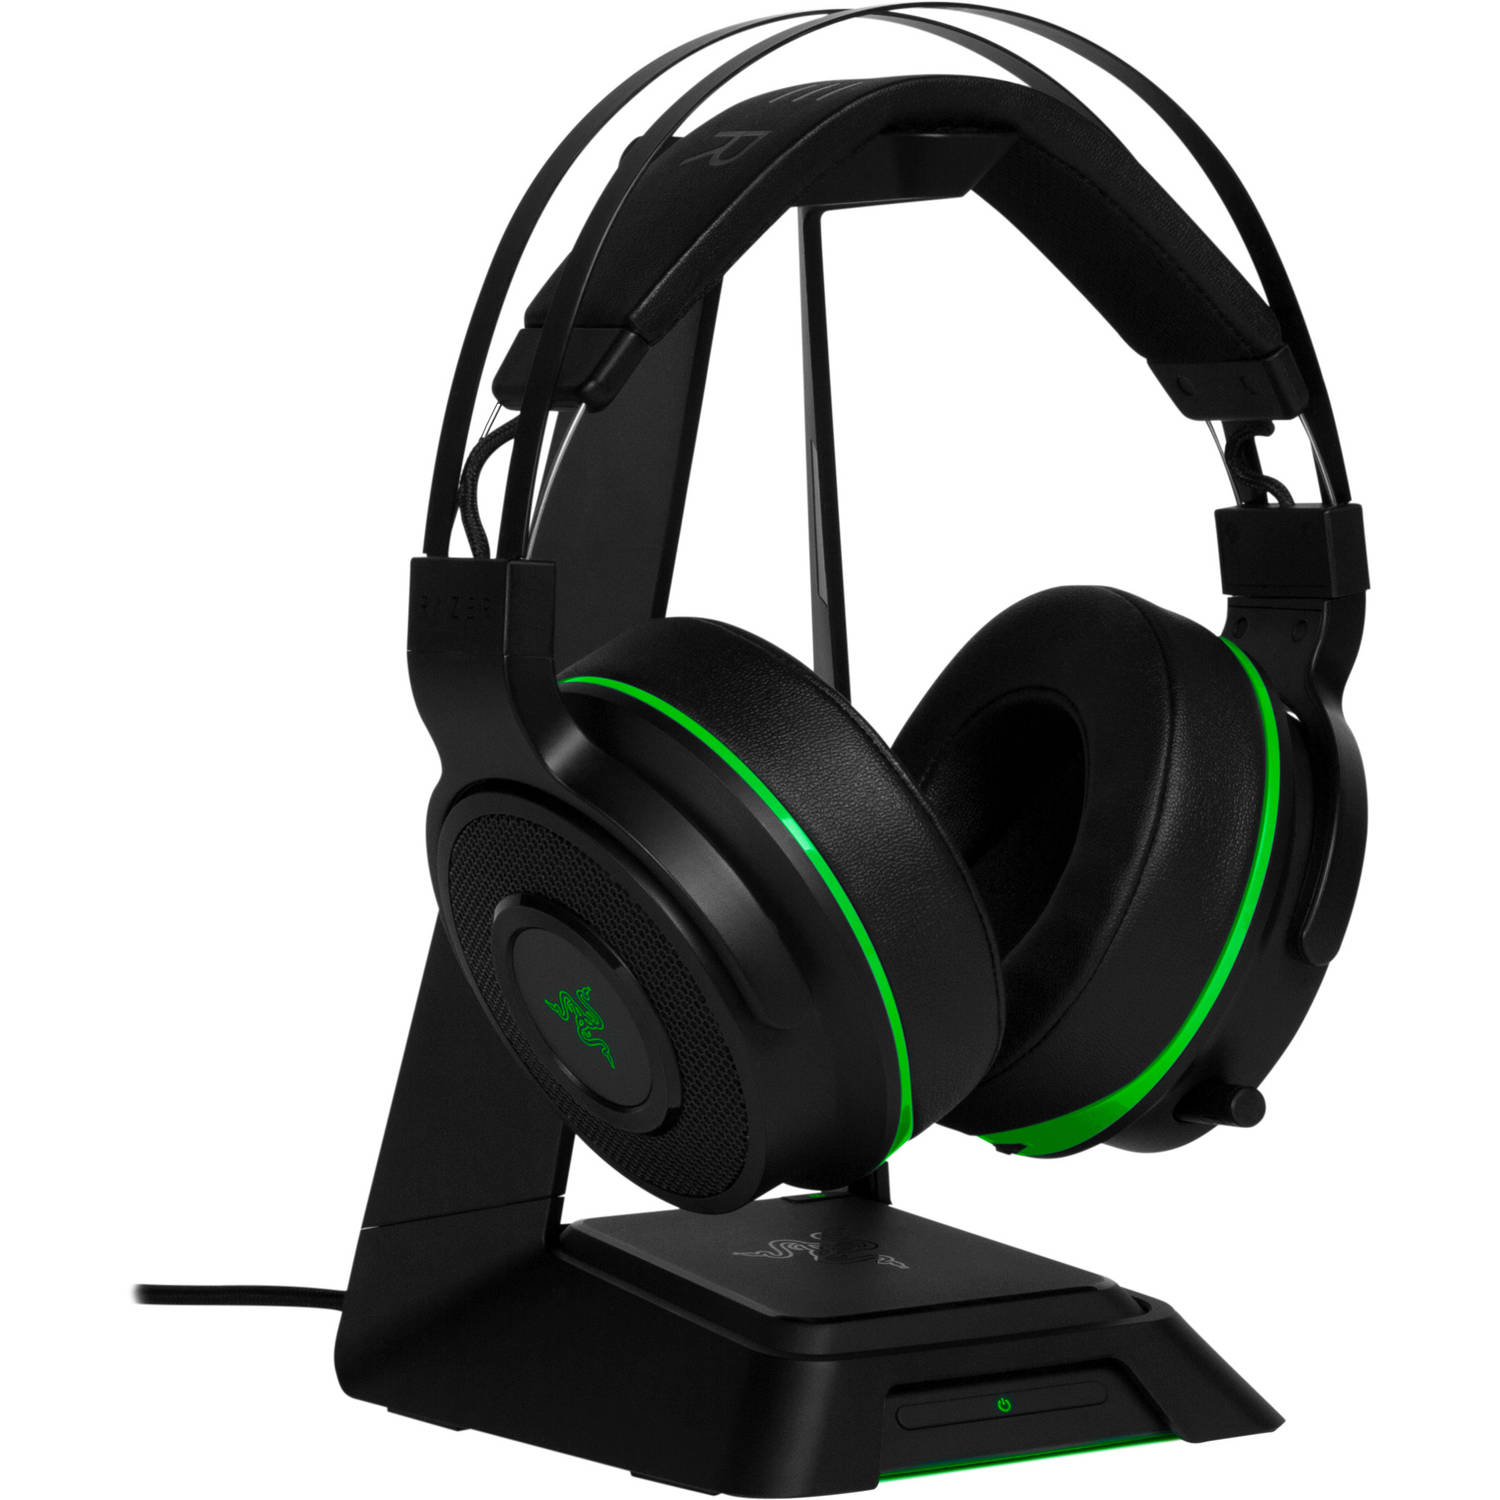 Thresher ultimate wireless surround gaming headset